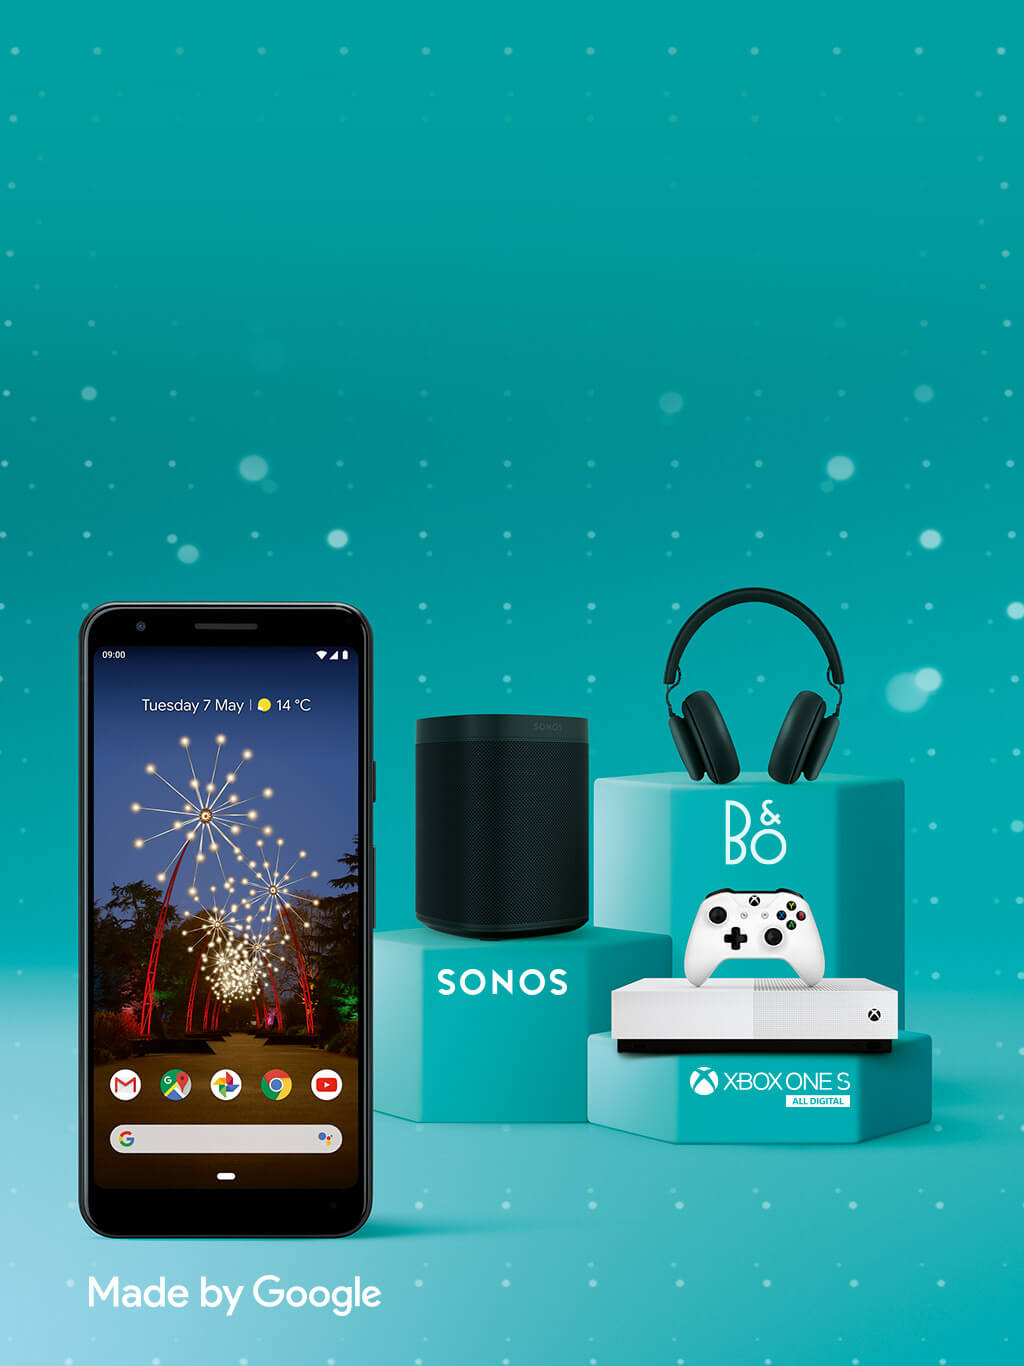 Google Pixel 3a with Sonos speaker, Xbox and B&O headphones